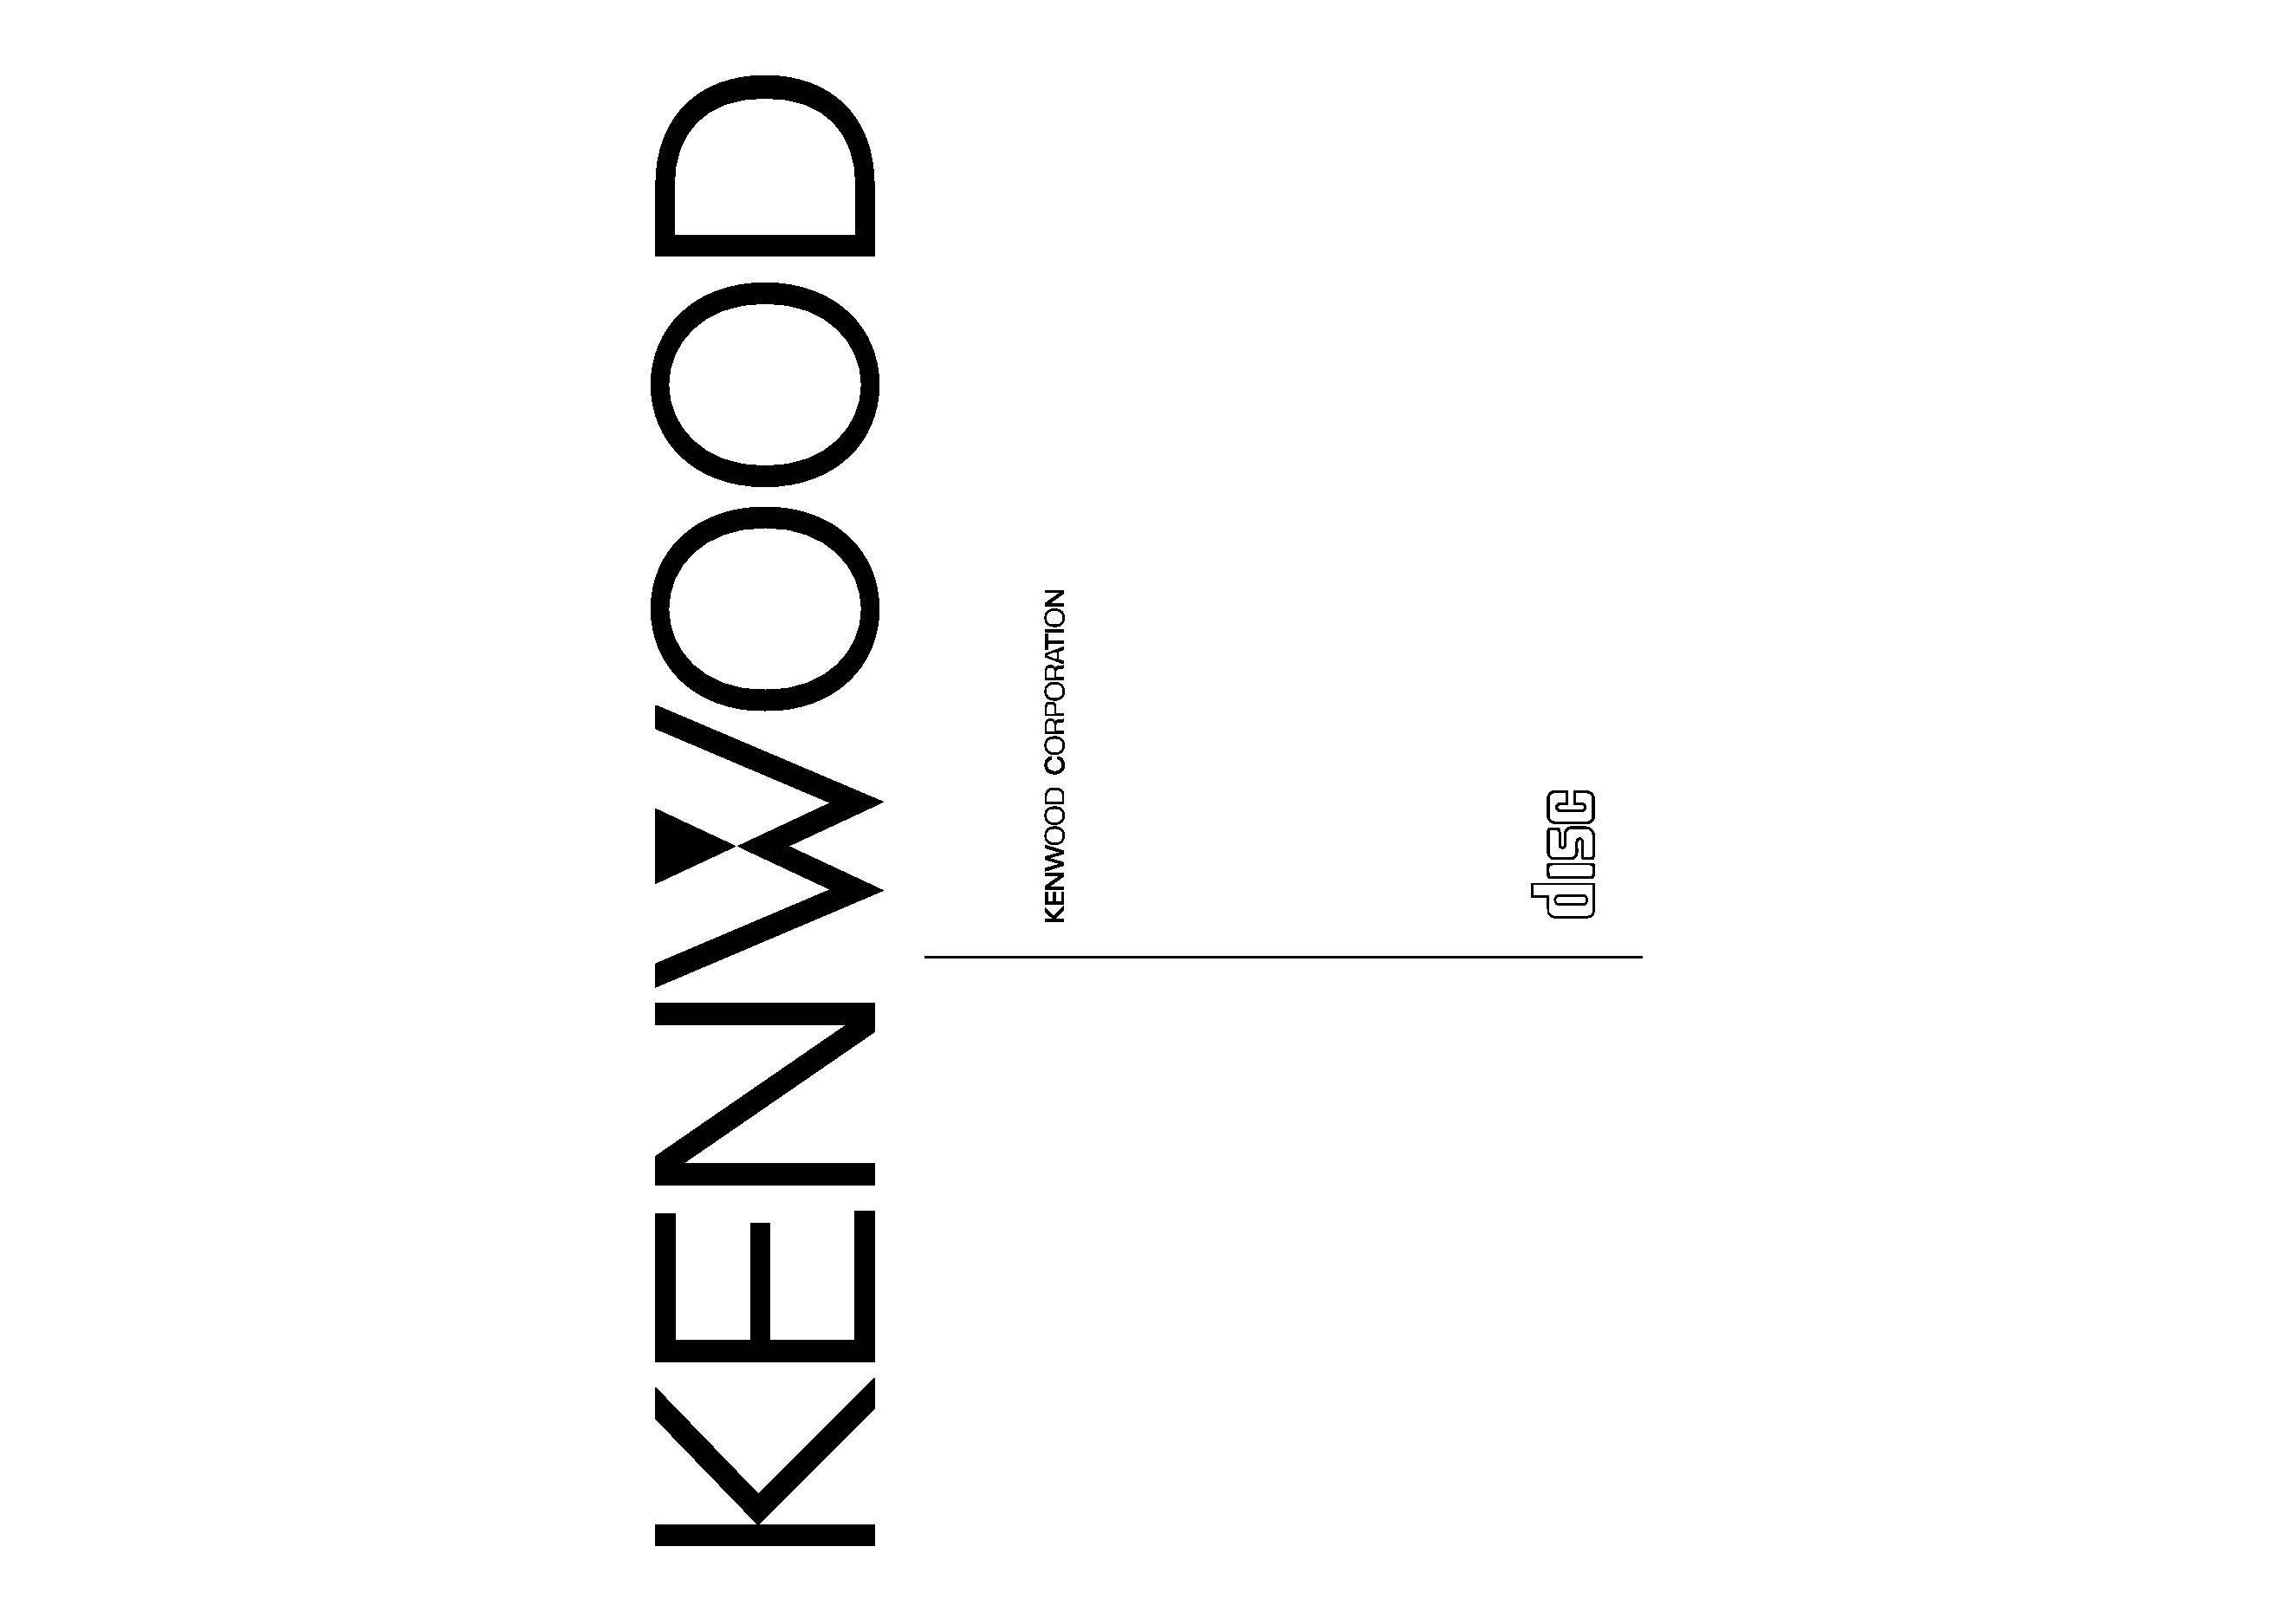 Kenwood Kdc 7070r Owners Manual Immediate Download Wiring Diagram Background Image Ps9070r